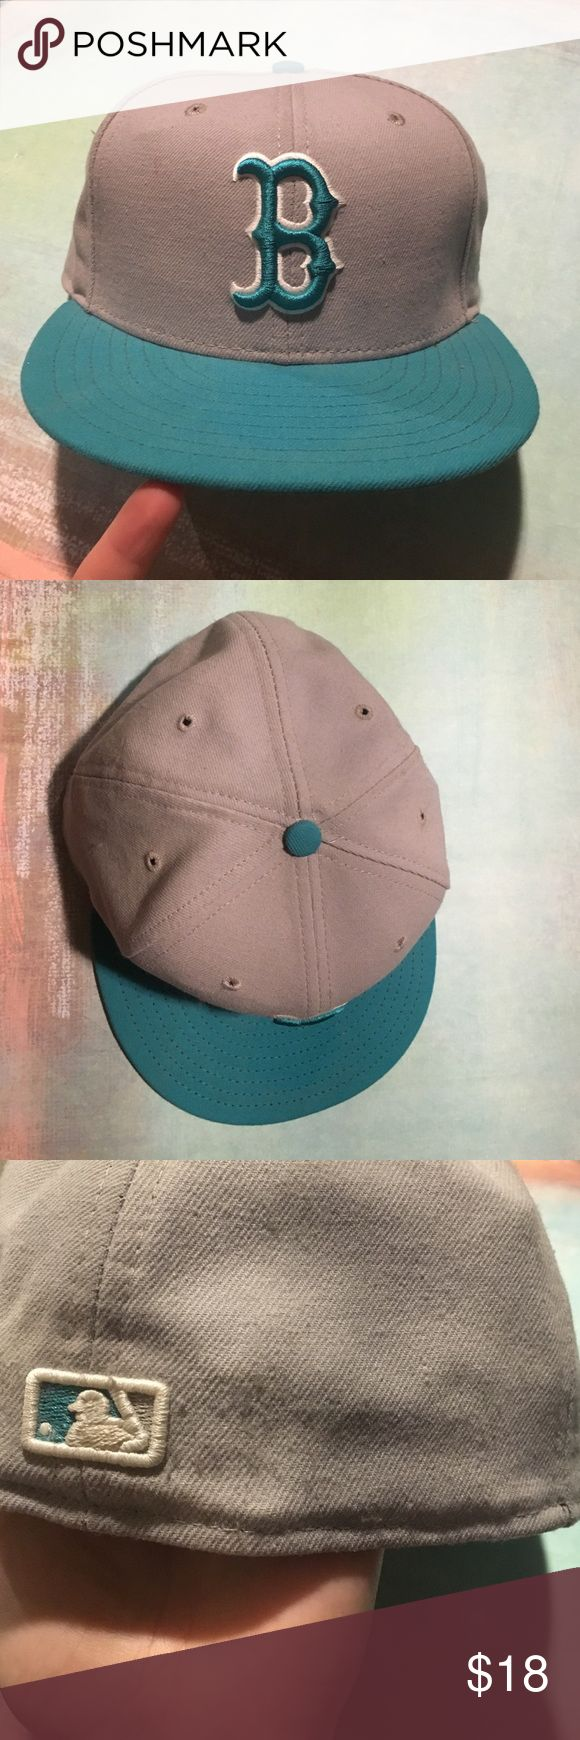 New Era MLB Fitted Baseball Cap New Era MLB Fitted Baseball Cap. Authentic.  Teal and grey, slightly worn. Size 7.5 or 59.6cm. New Era Accessories Hats